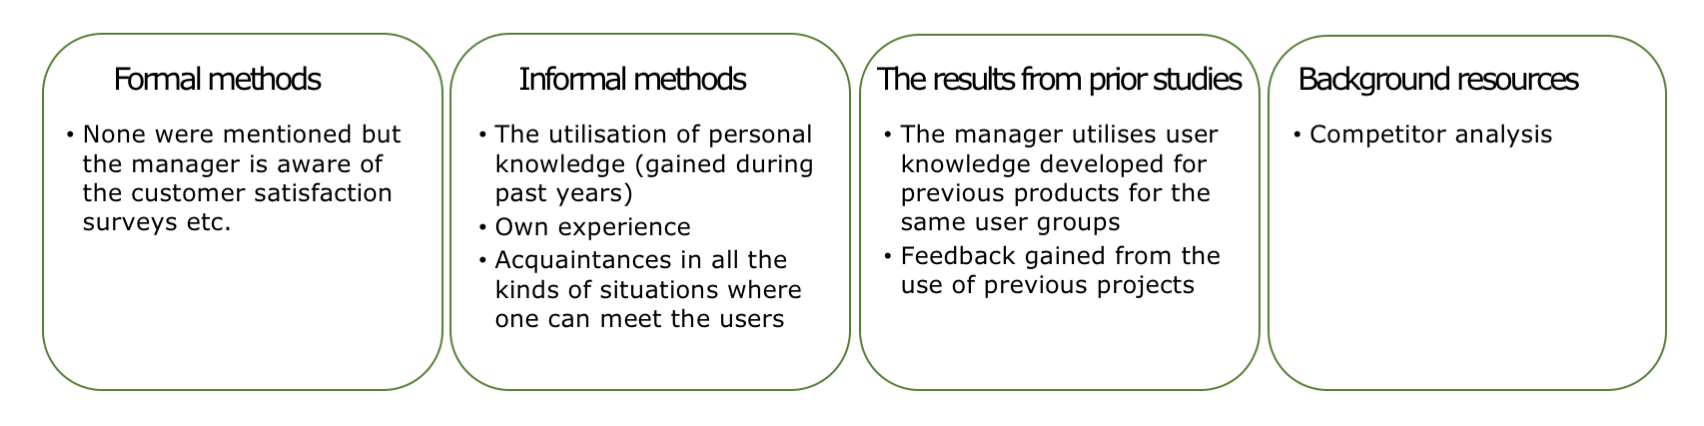 The product manager's method mix emphasises direct customer contacts and own experience.